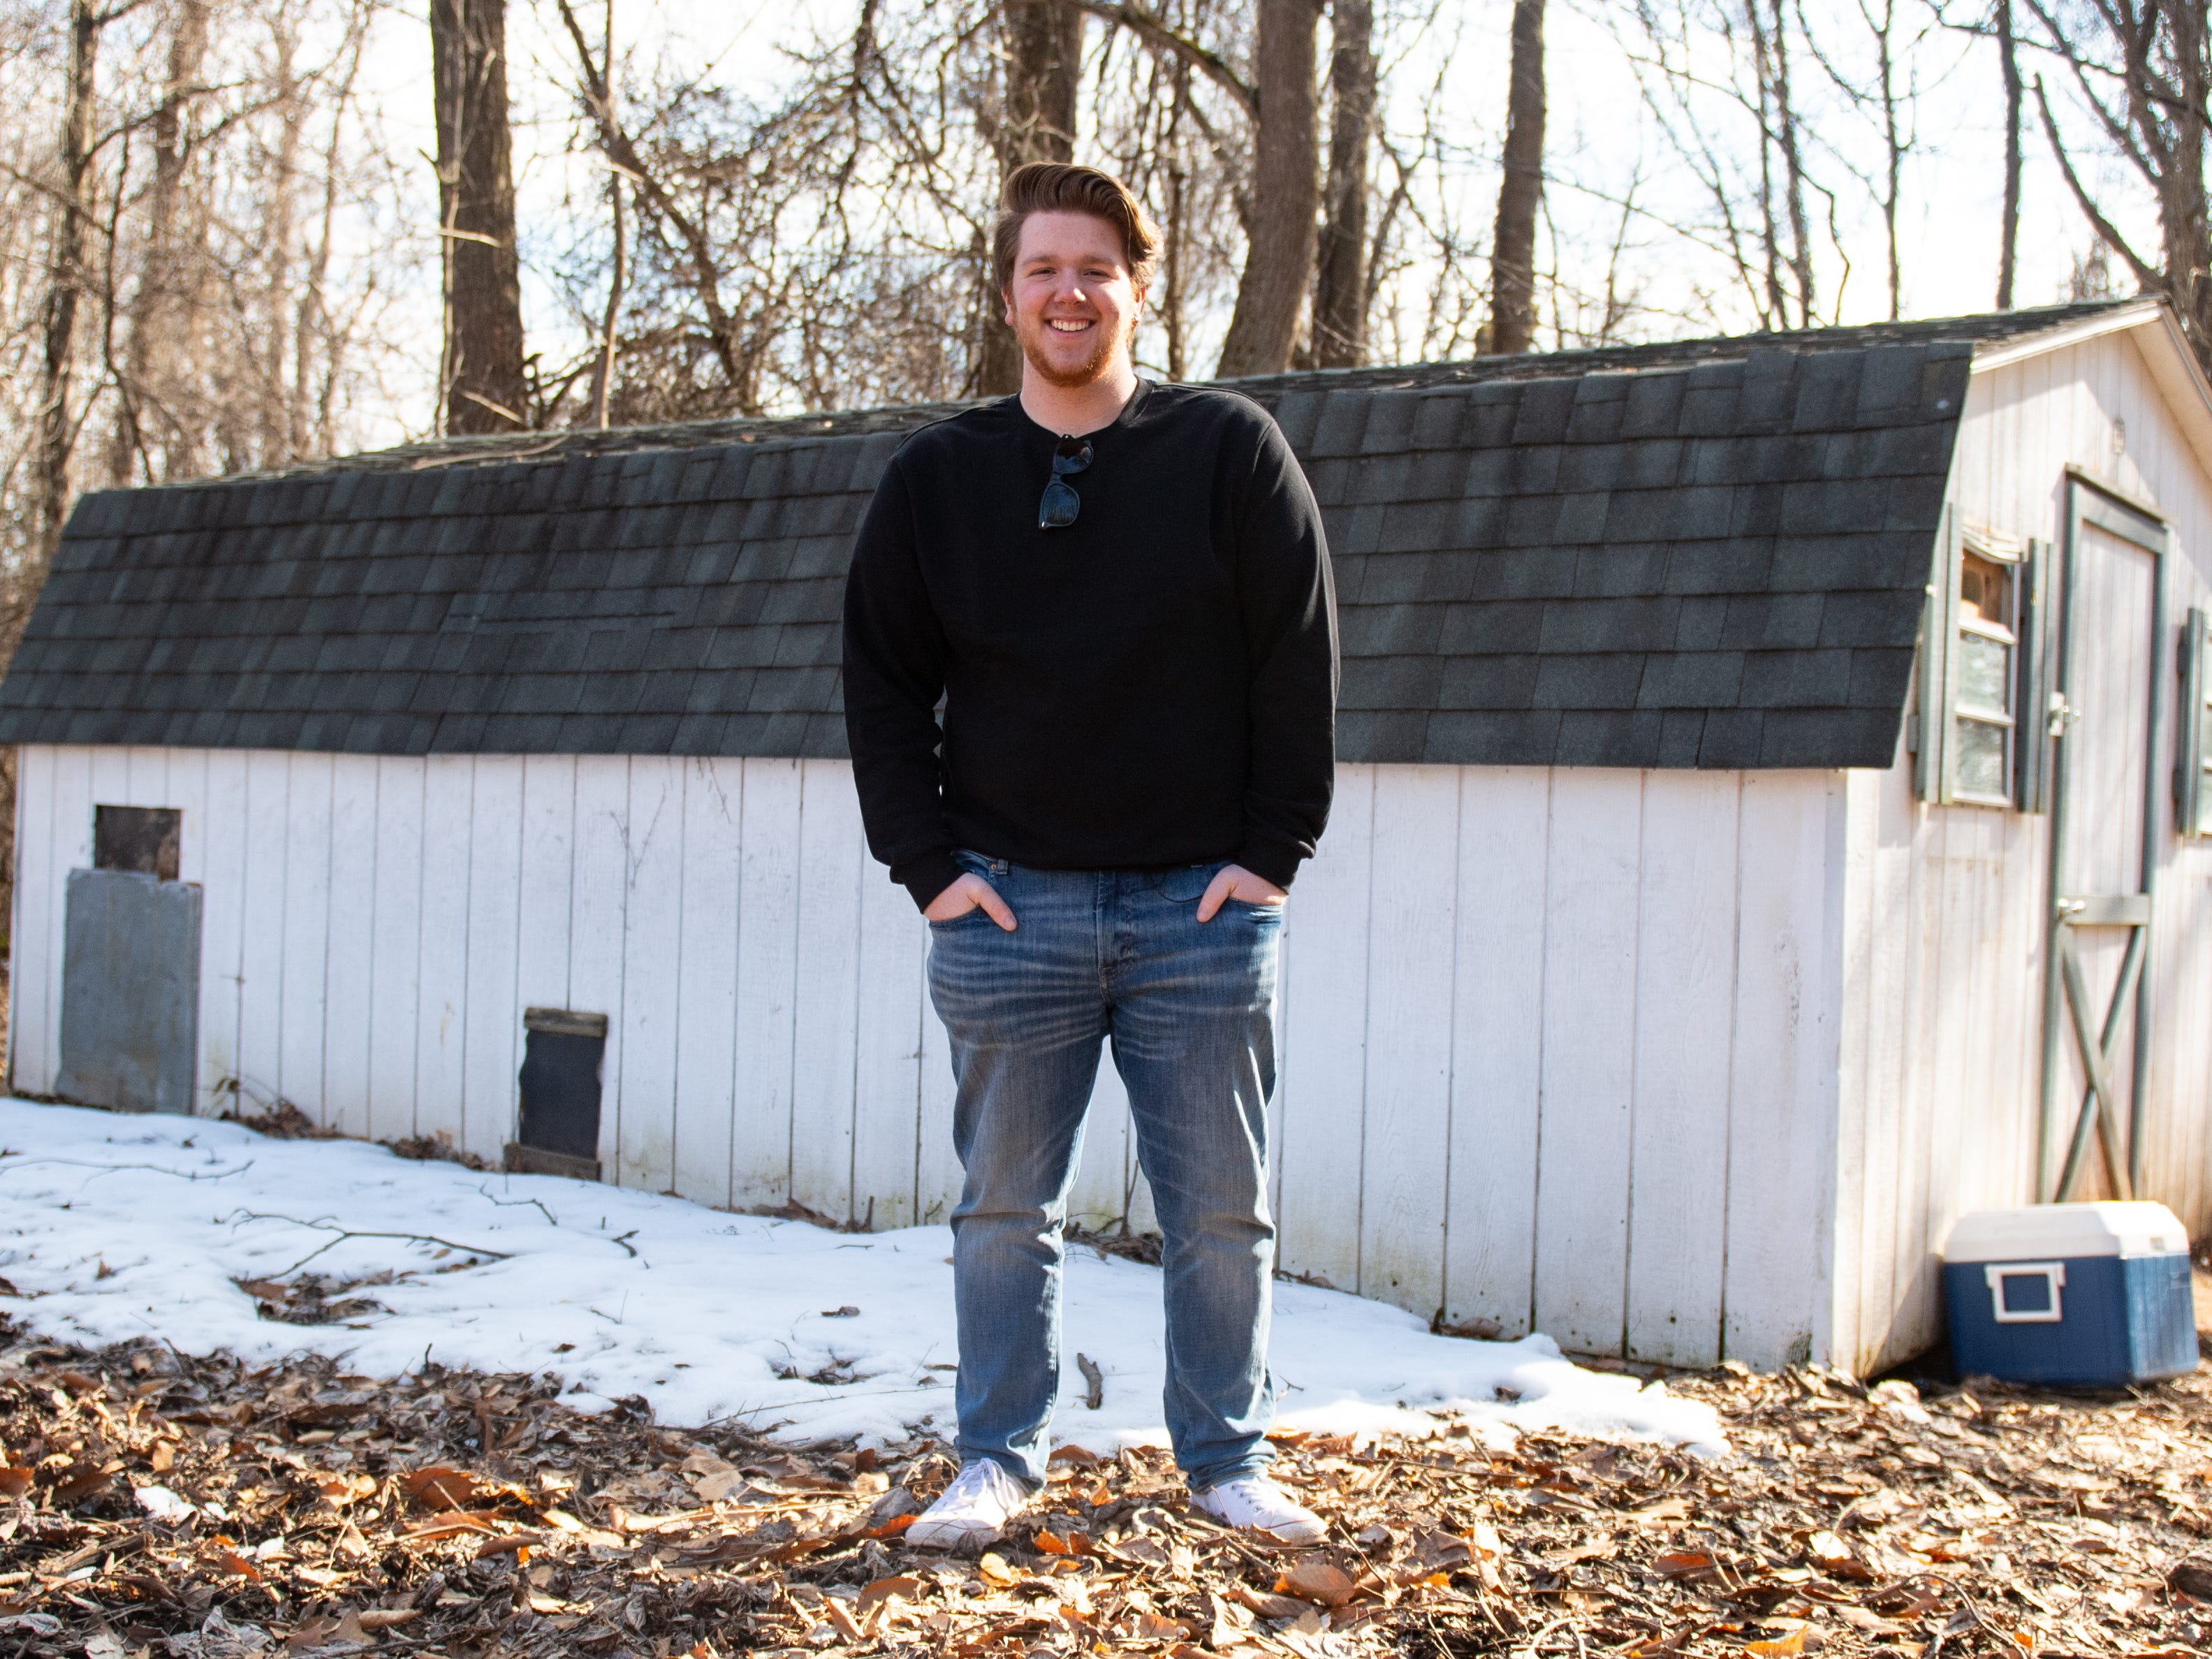 """Jake Puliti, an """"American Idol"""" hopeful from Newberry Township, does the majority of his singing in a converted chicken coop, which he and three of his friends call """"Crooked Coop Records."""""""